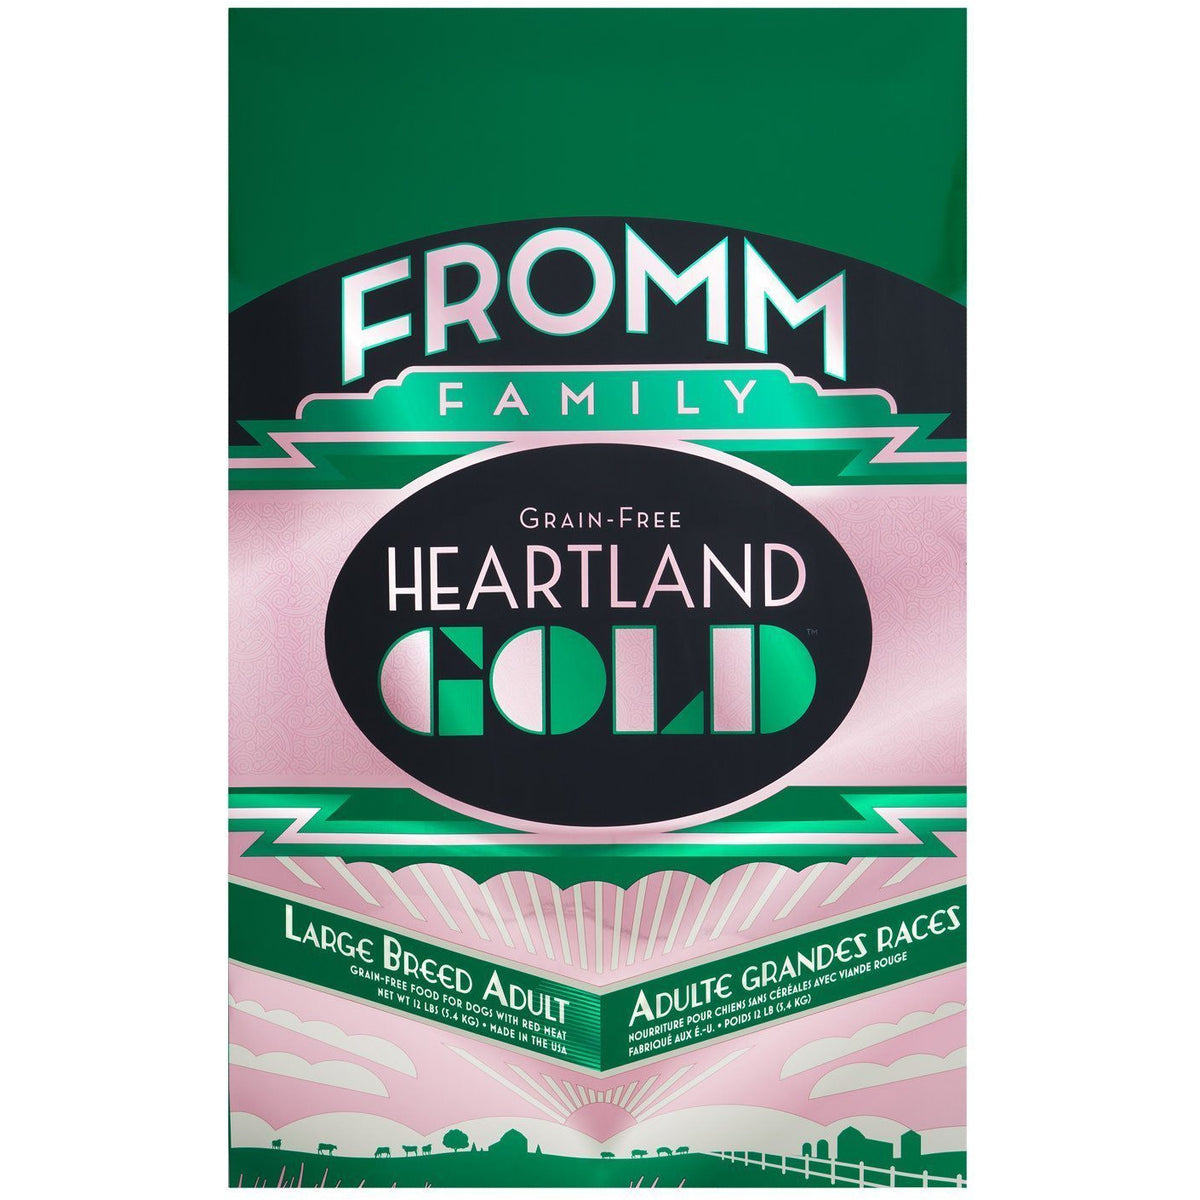 Fromm Heartland Gold Large Breed Dog Food (11.8kg)